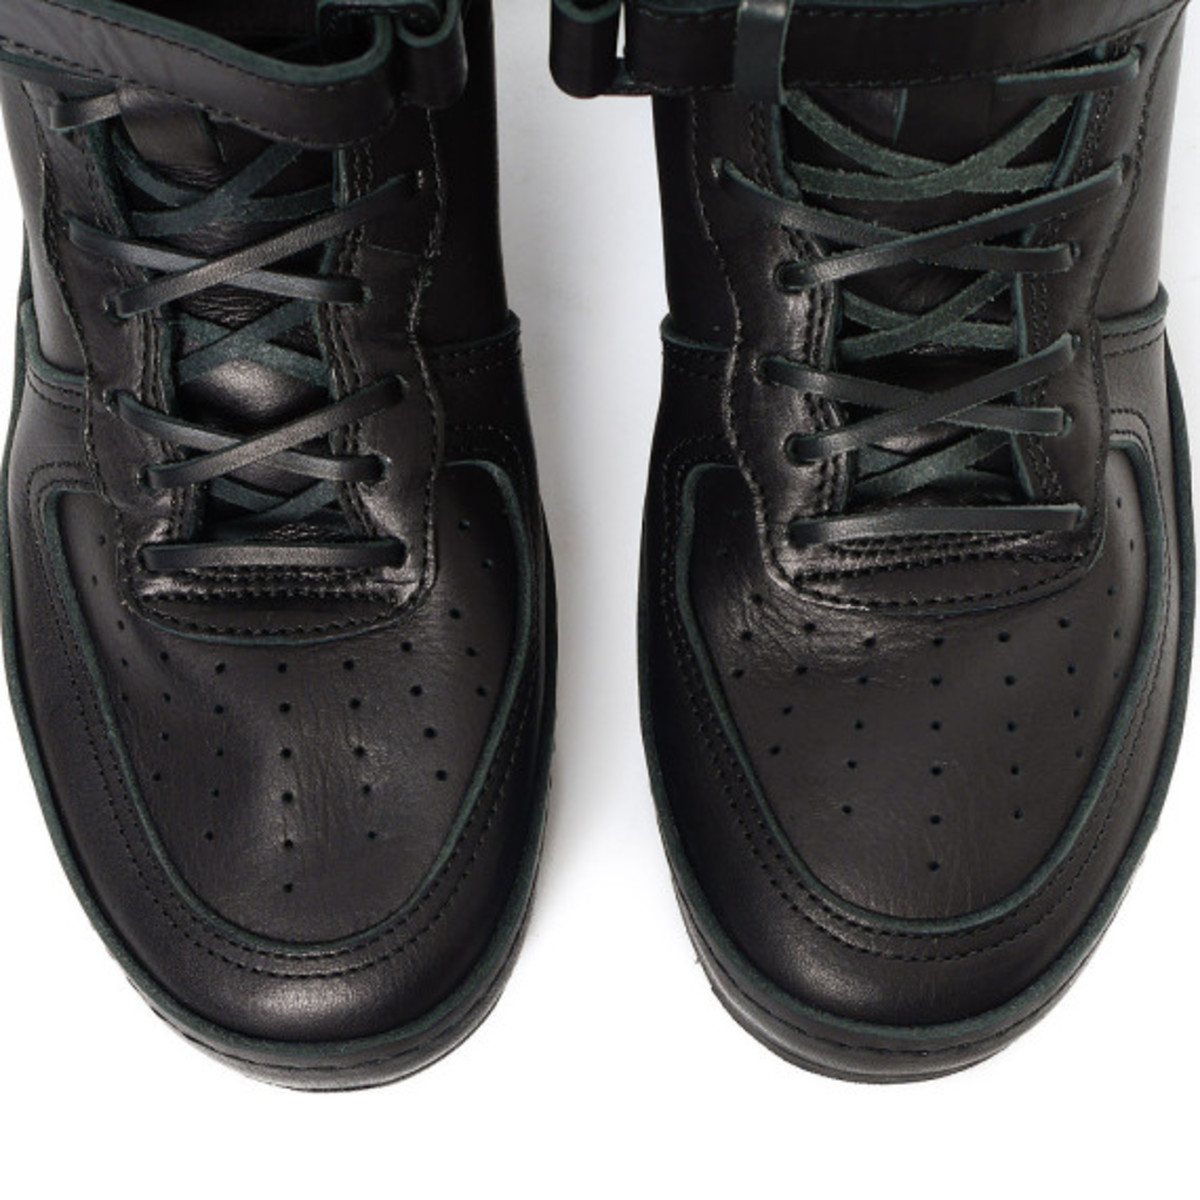 Hender Scheme - Manual Industrial Products 01 Black: Inspired by Nike Air Force 1 High - 5